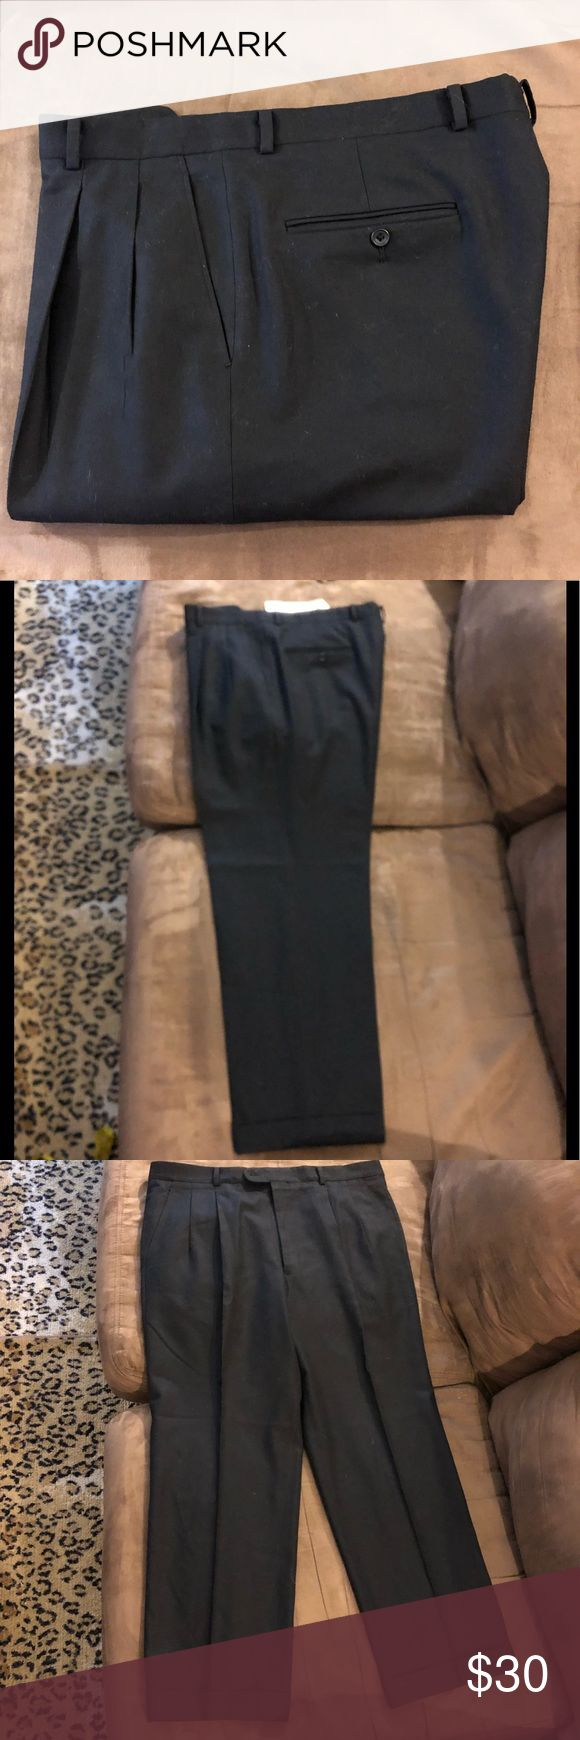 Hickey Freeman Navy Blue Dress Pants 38x30 Hickey Freeman Solid Navy Blue Milled Wool Dress Pants 38x30, Pleated and cuffed! Great condition!  Please make reasonable offers and bundle! Ask questions :) Hickey Freeman Pants Dress